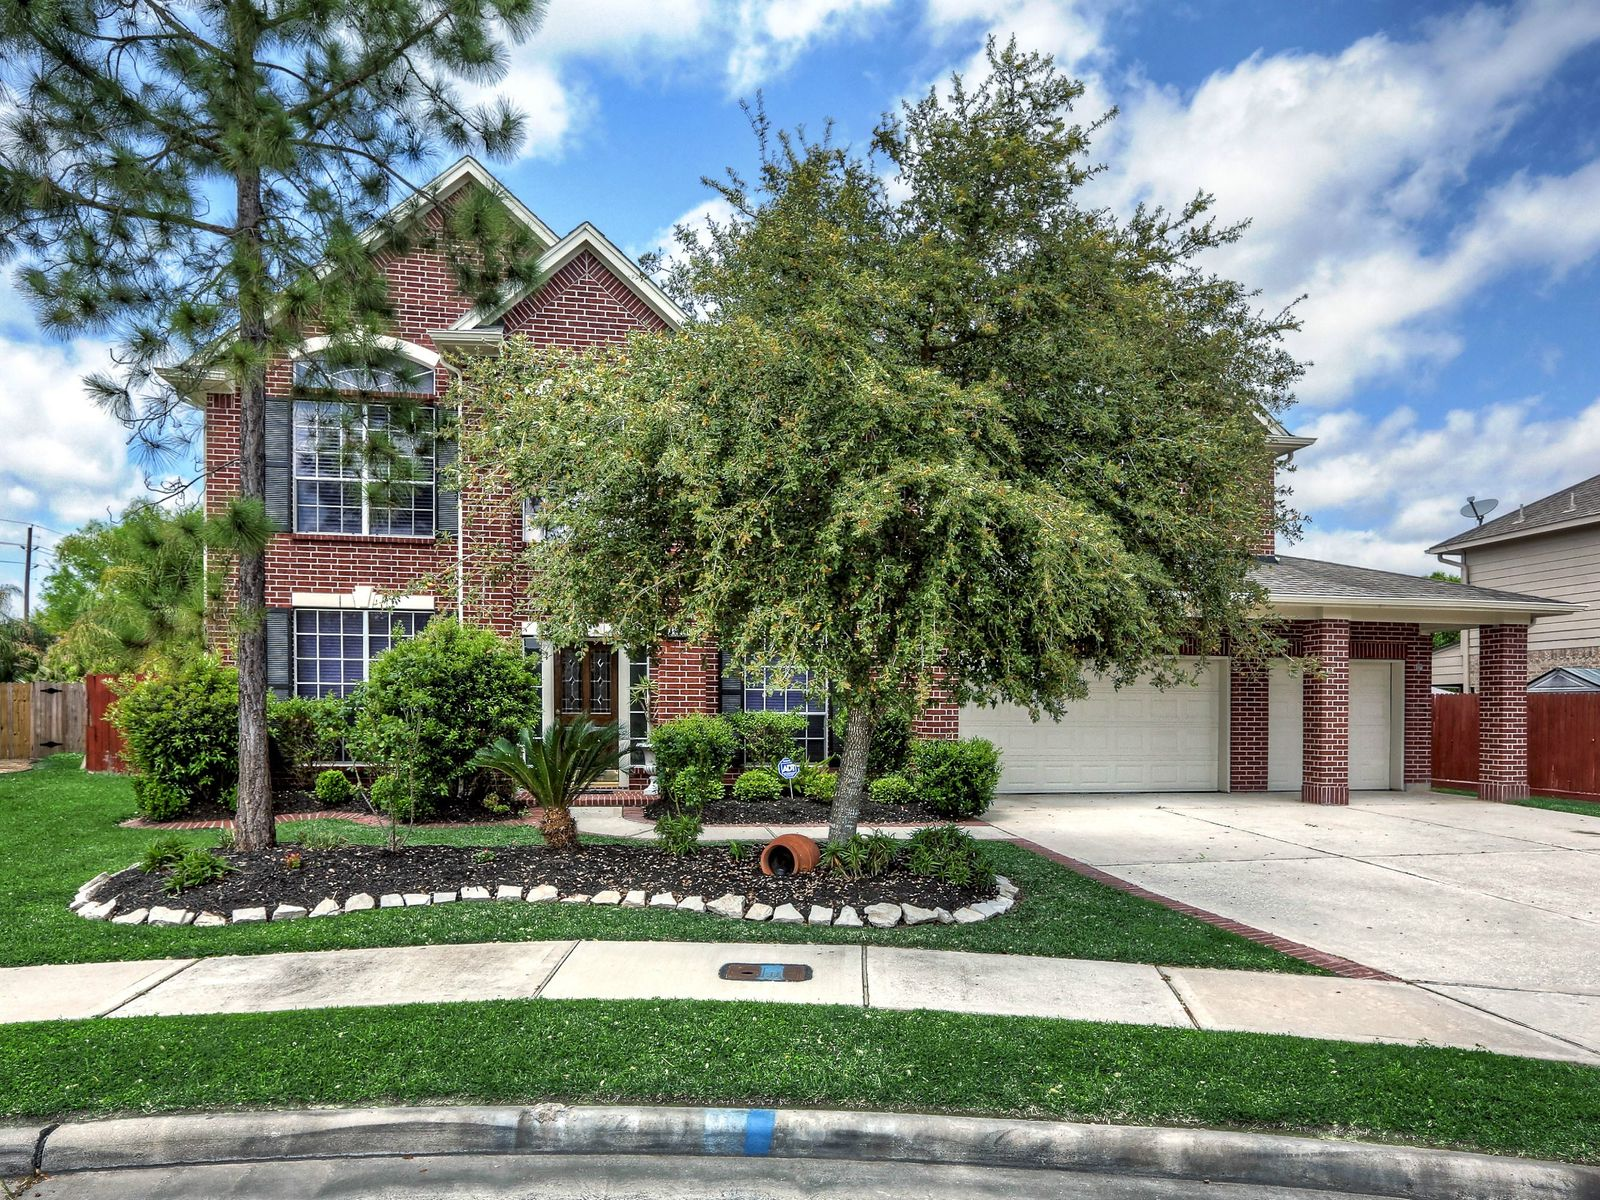 3704 Pine View Ct, Pearland TX Single Family Home - Houston Real Estate